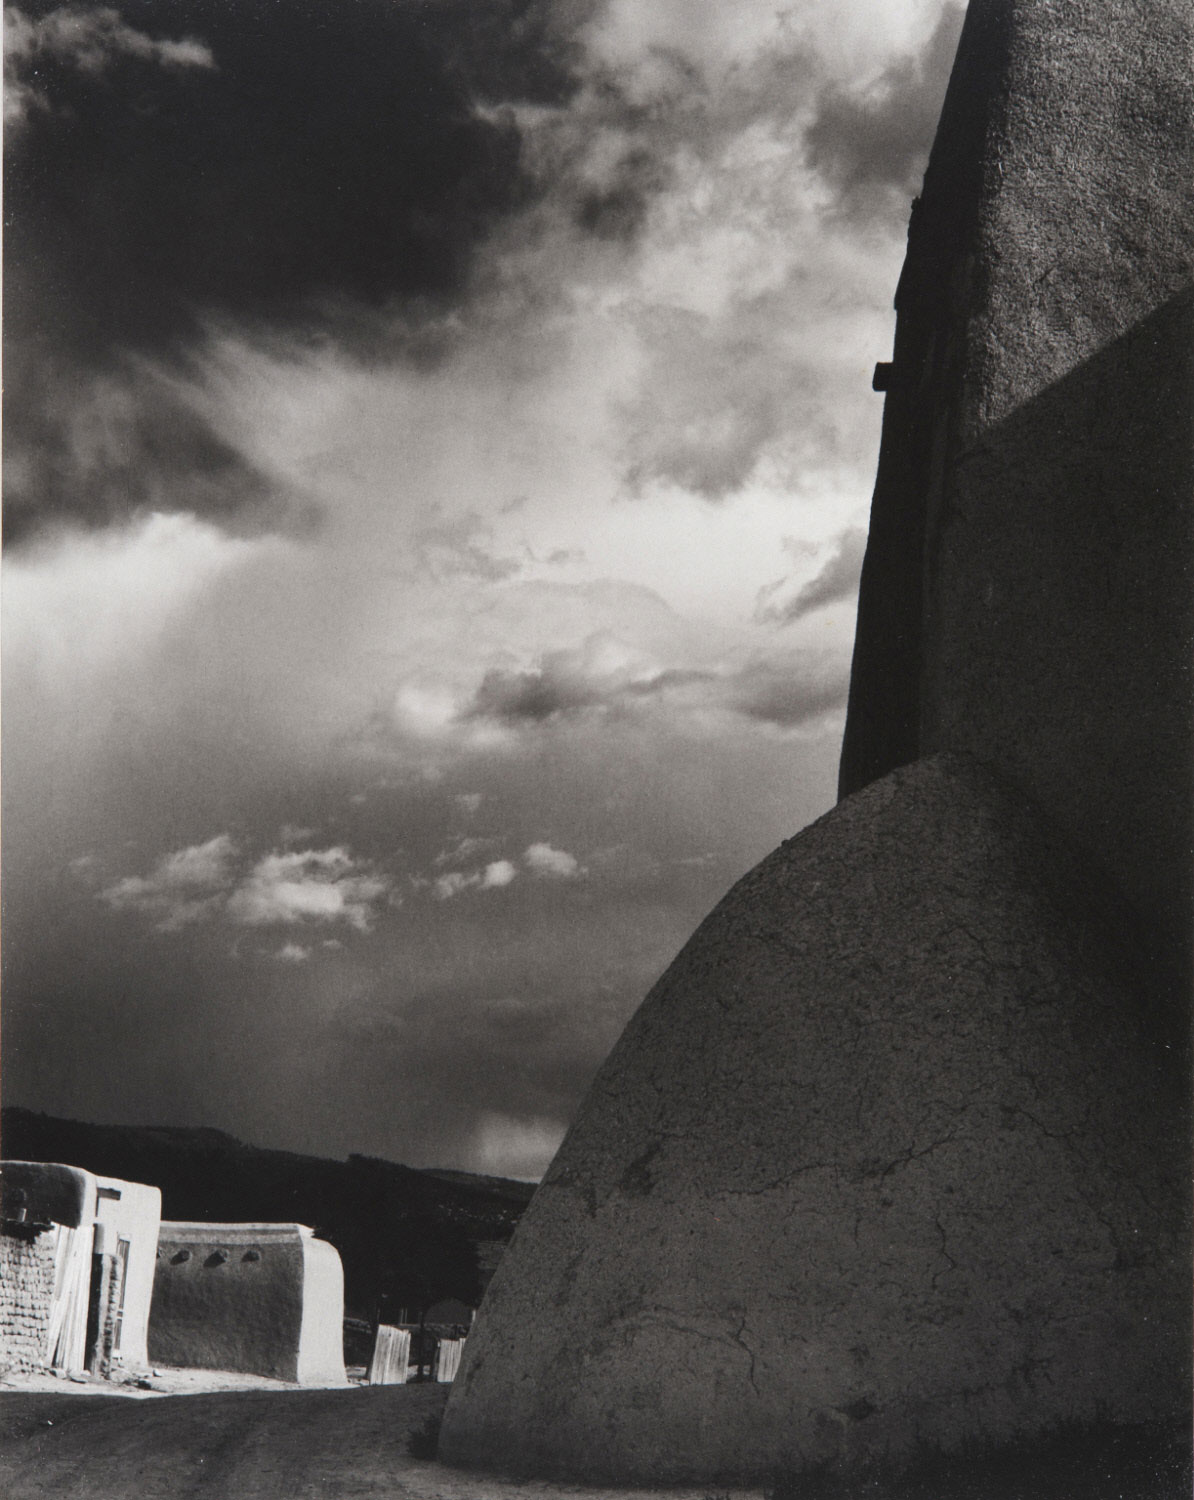 Church Buttress, Ranchos de Taos, New Mexico